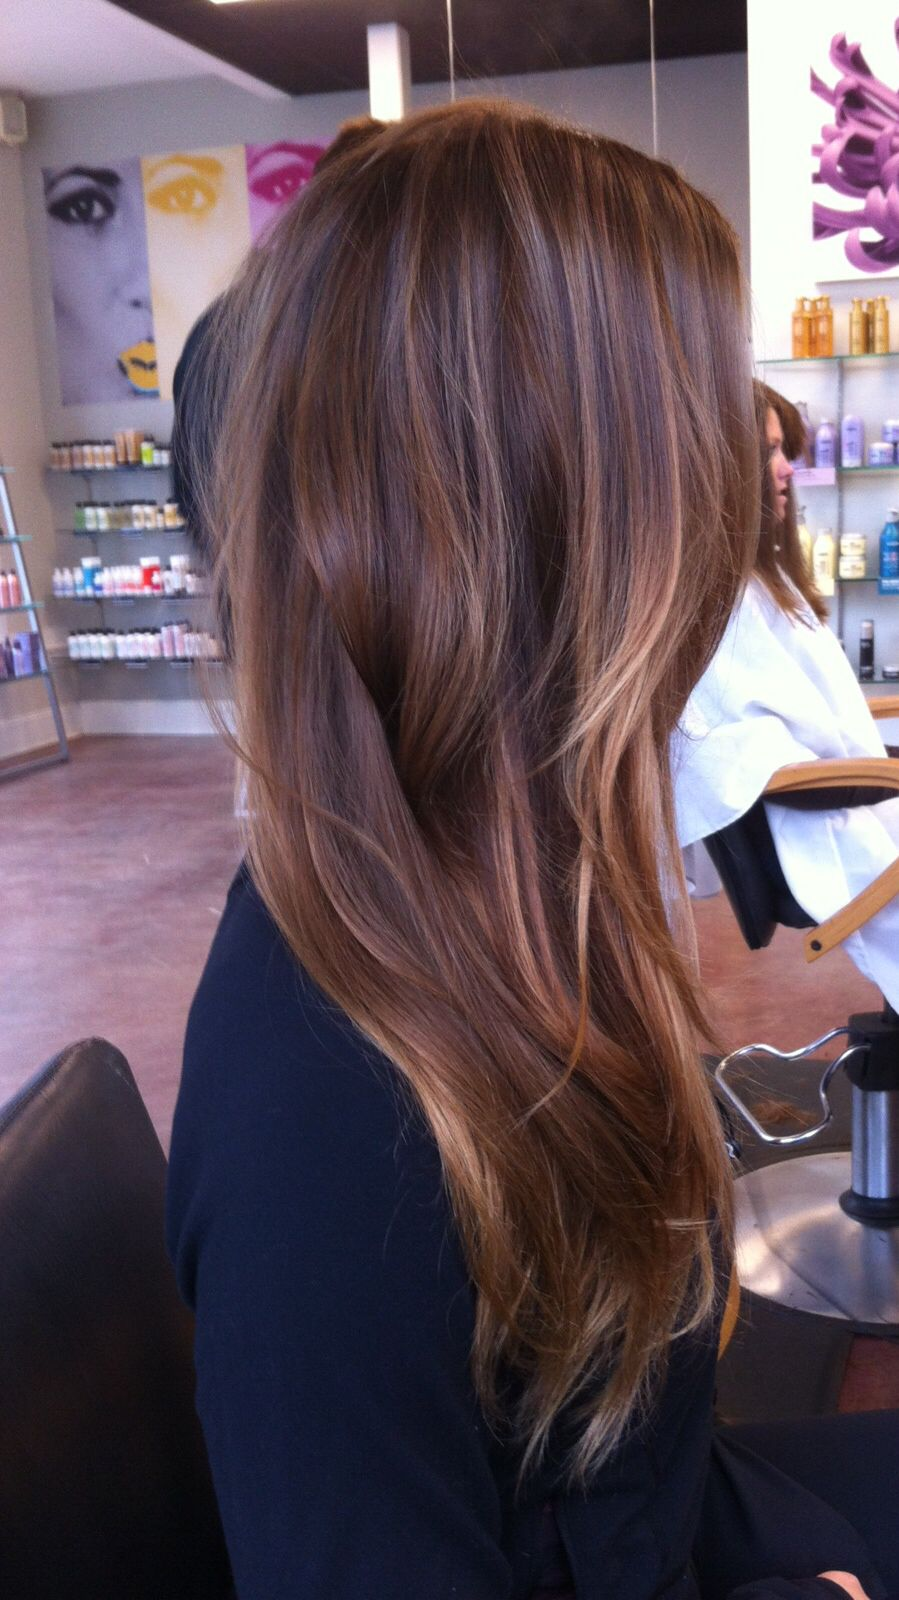 Long brown hair with blonde highlights  caramel  honey  chocolate